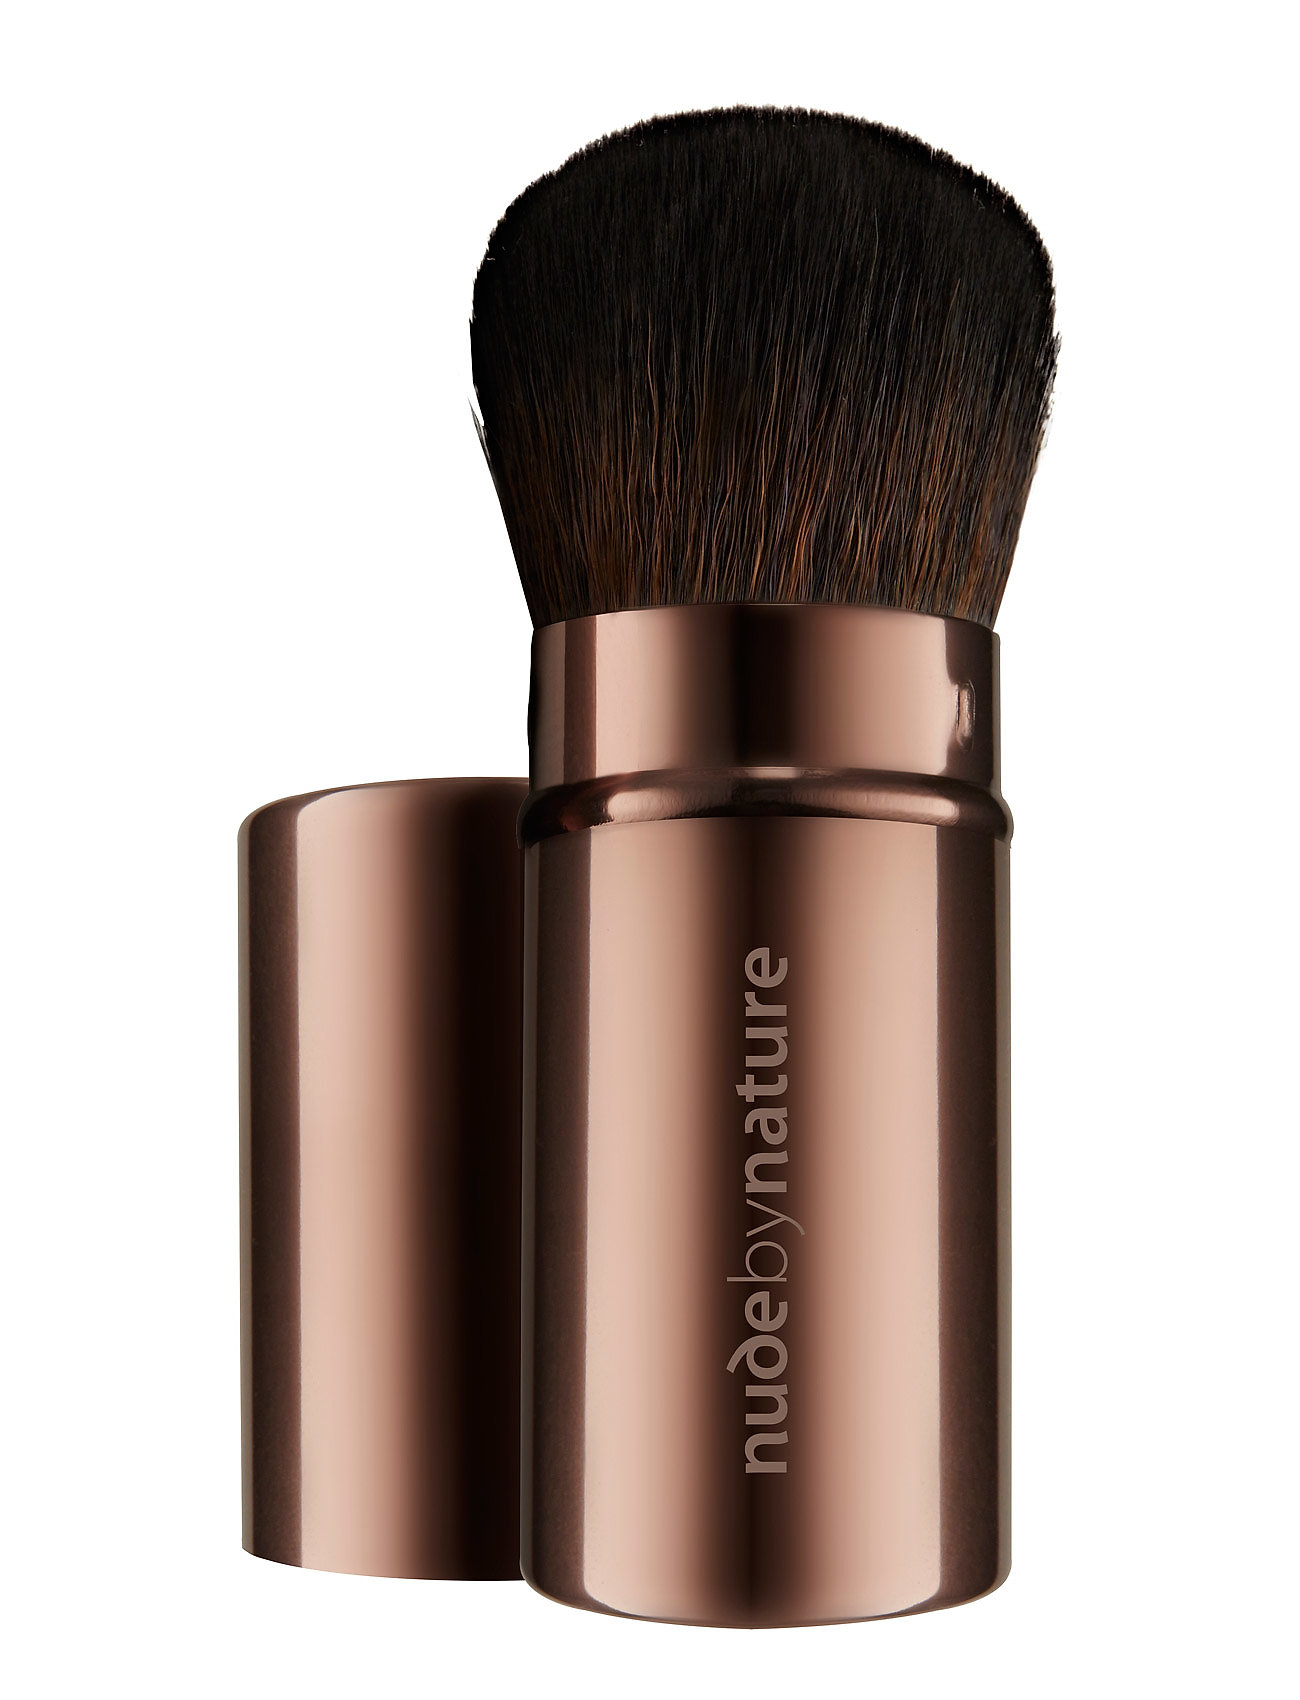 Image of Brushes 10 Travel Brush Beauty WOMEN Makeup Makeup Brushes Face Brushes Nude Nude By Nature (2806004971)